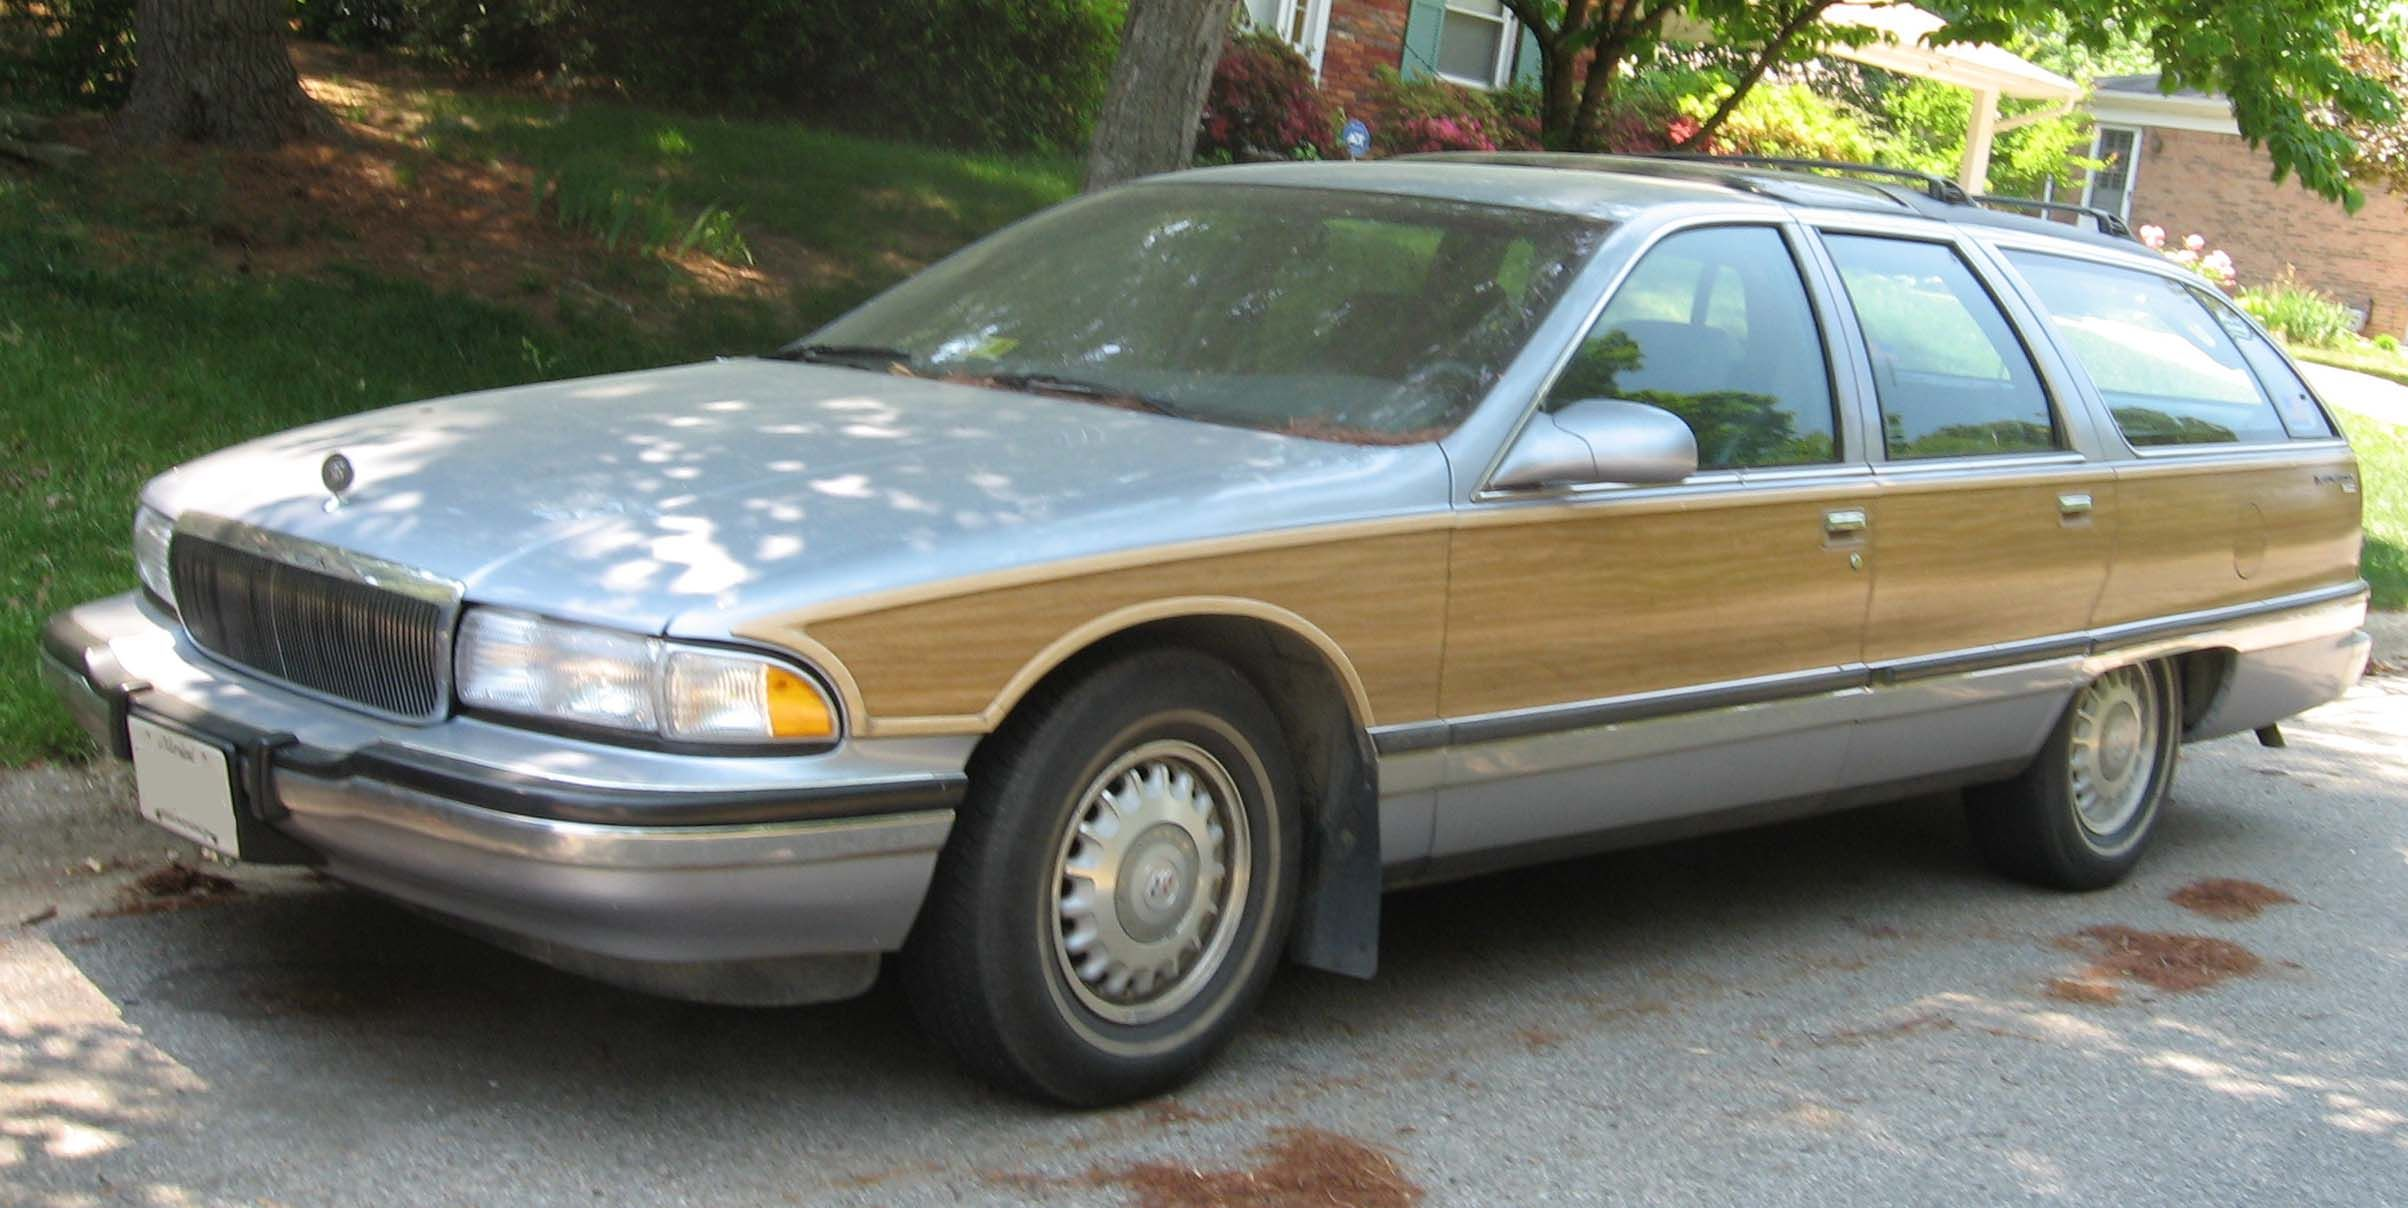 1995 buick roadmaster 4 dr estate wagon muscle cars hot rods pinterest buick roadmaster buick and chevrolet caprice